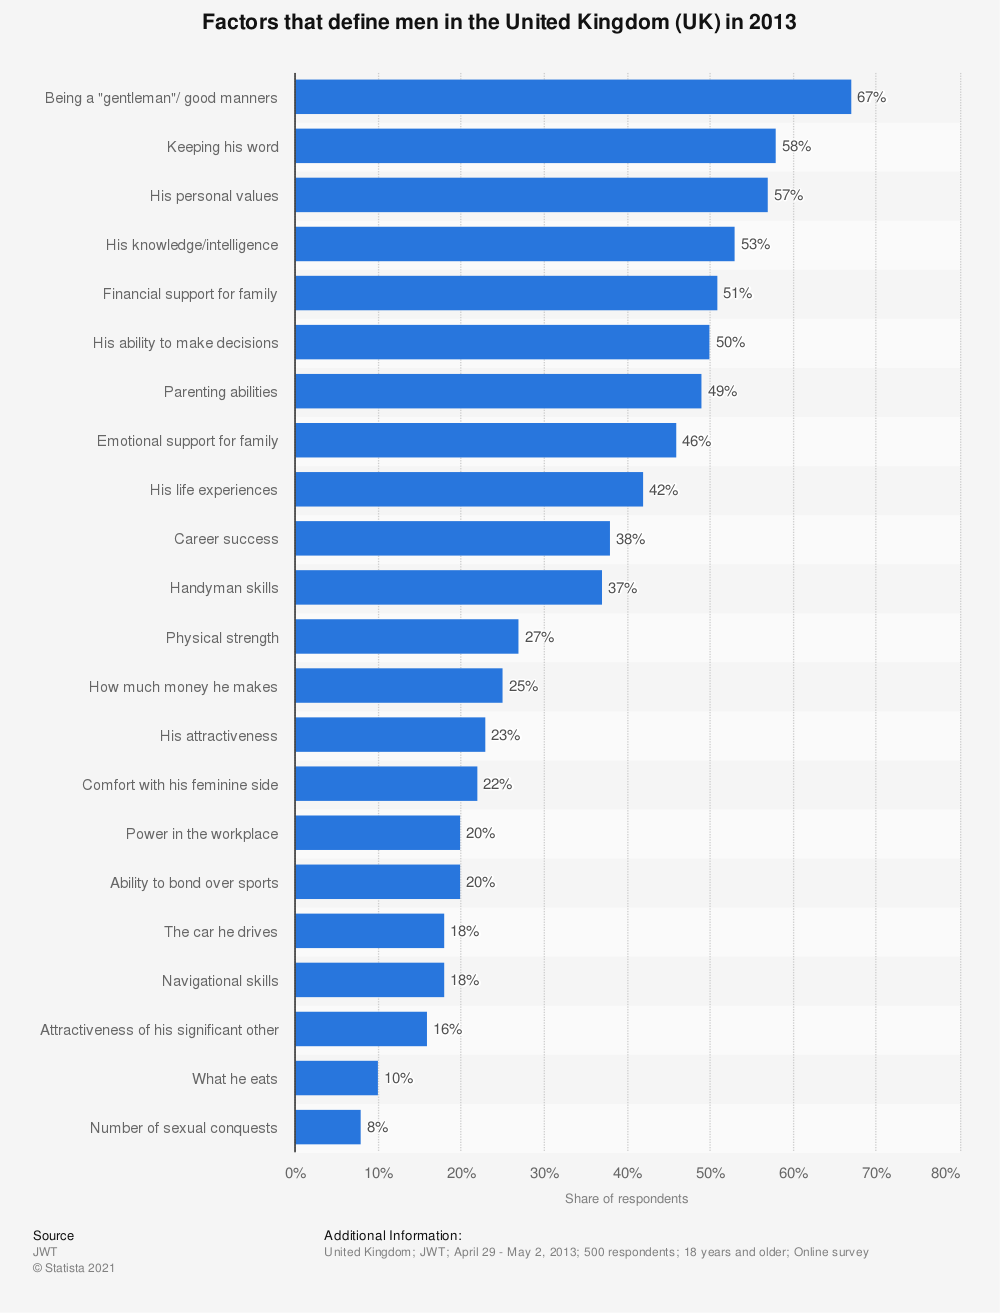 Statistic: Factors that define men in the United Kingdom (UK) in 2013 | Statista